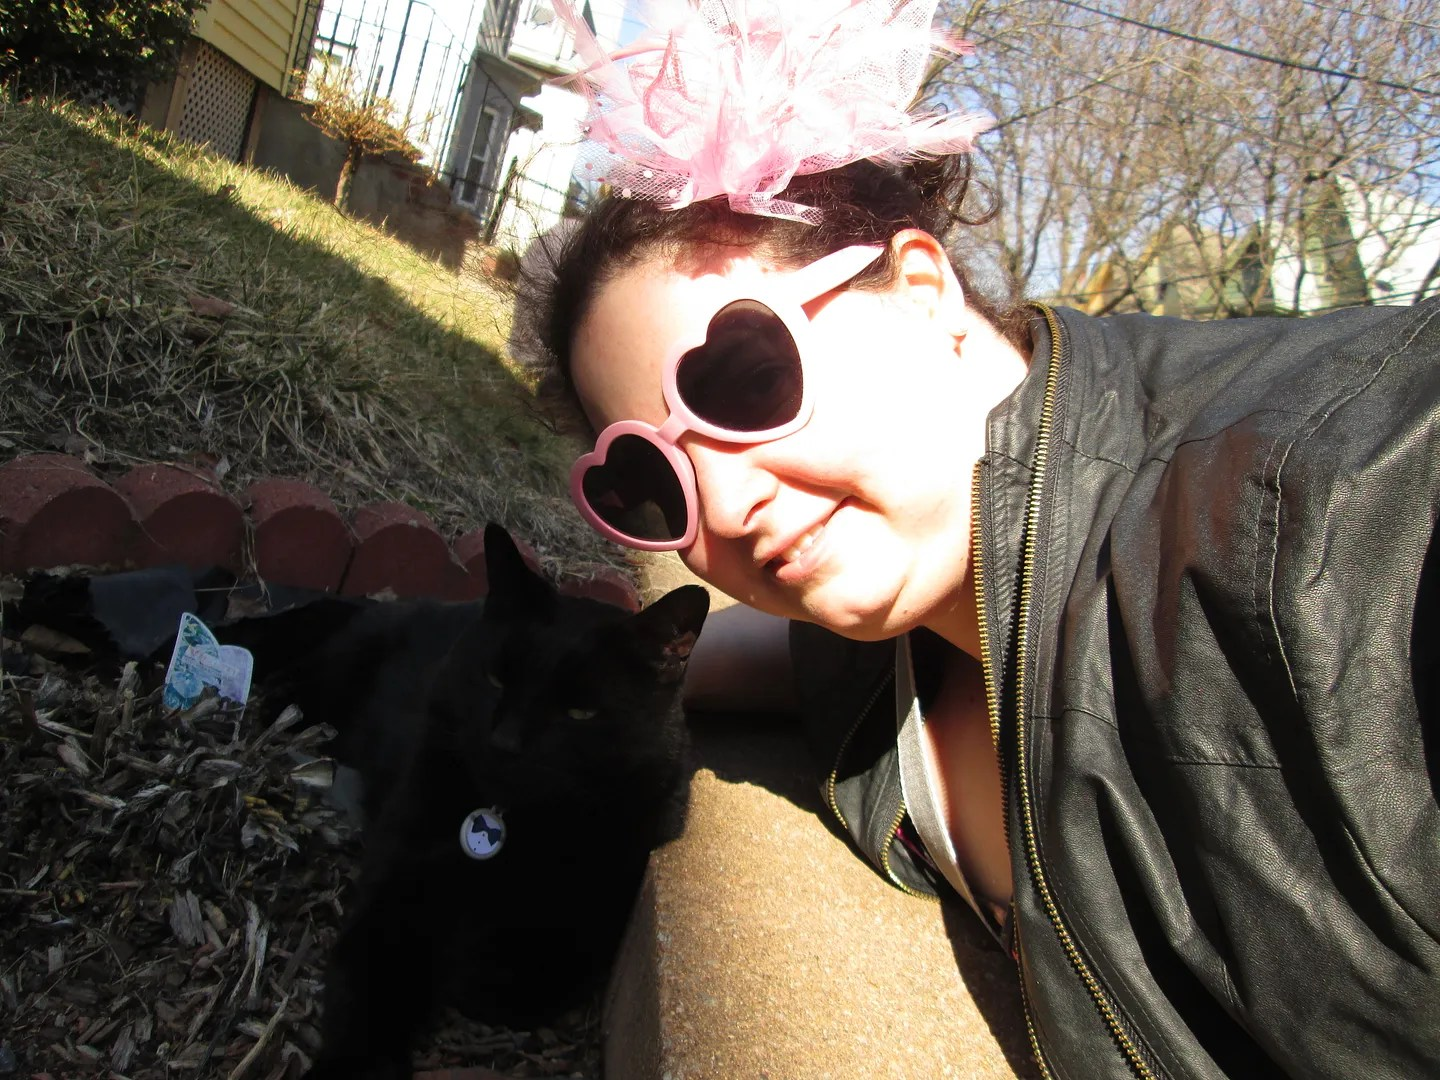 selfie of woman in leather jacket with pink sunglasses and black cat looking evil